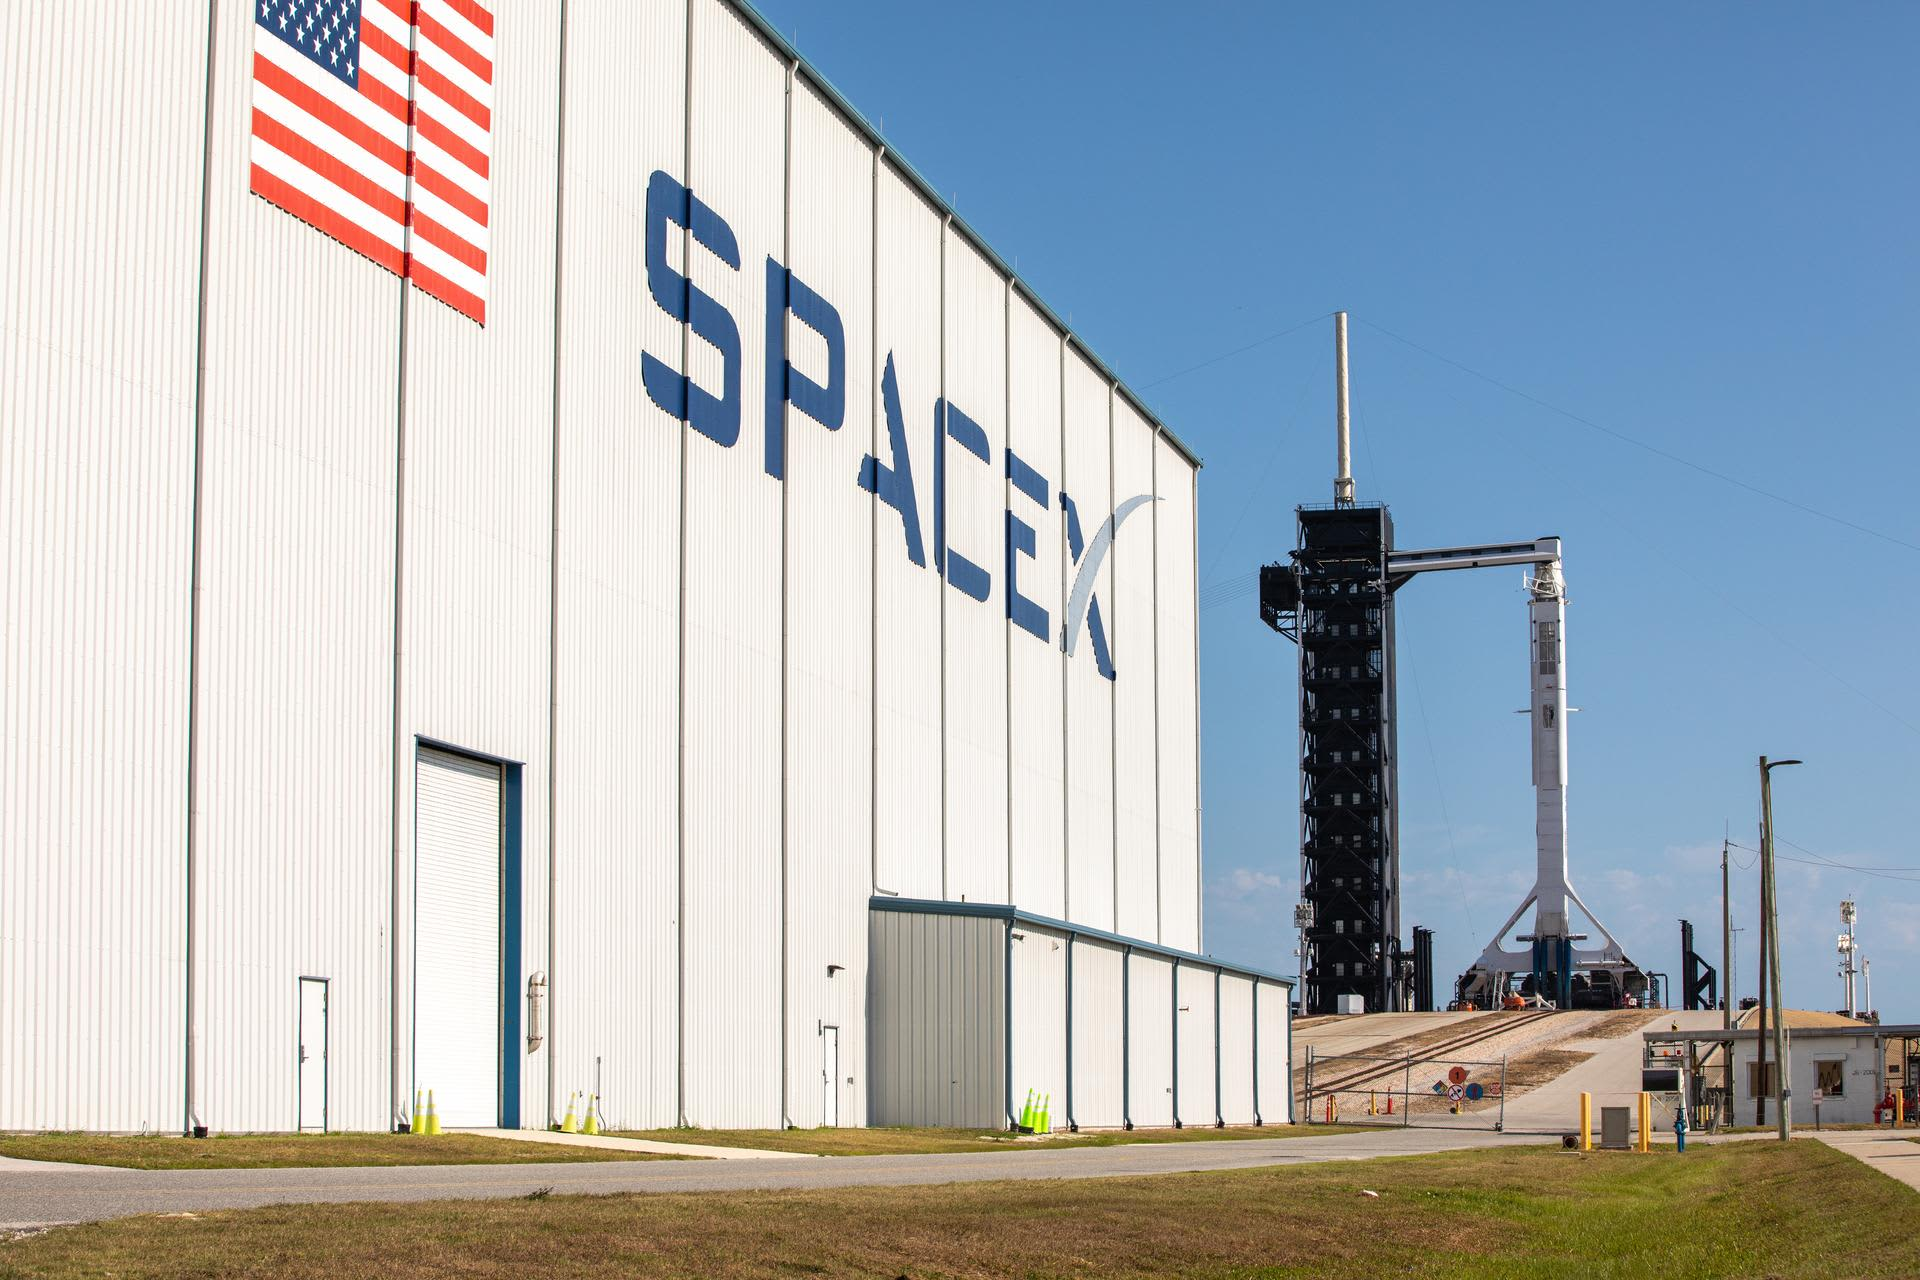 SpaceX denounces Justice Division's subpoena in hiring practices investigation as 'authorities overreach'